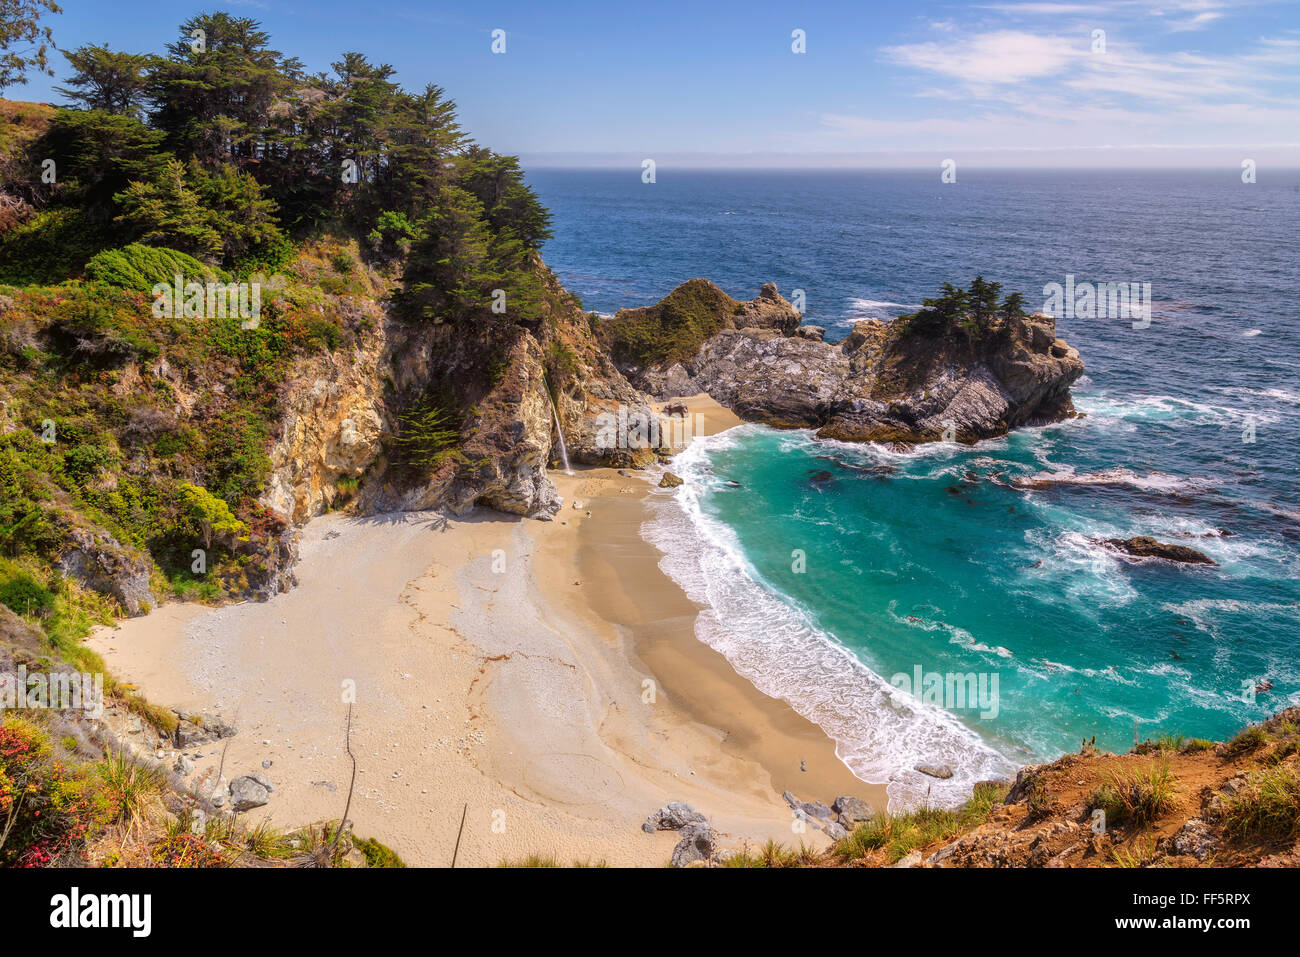 Beautiful beach on the Pacific coast of California - Stock Image